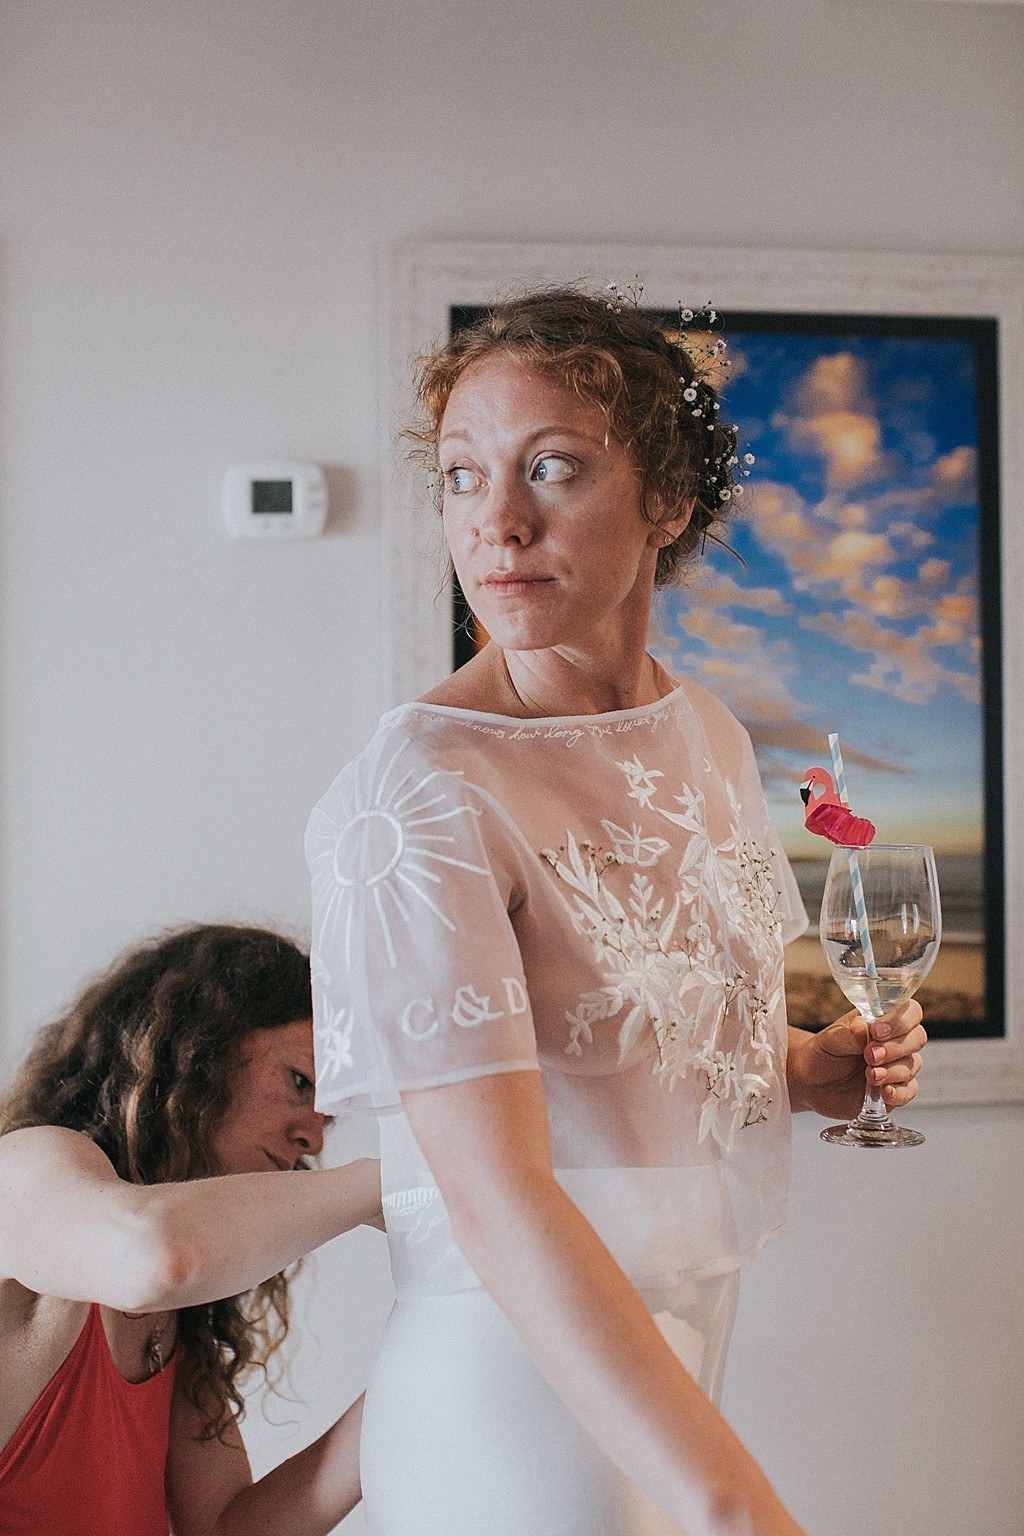 getting ready on the wedding day